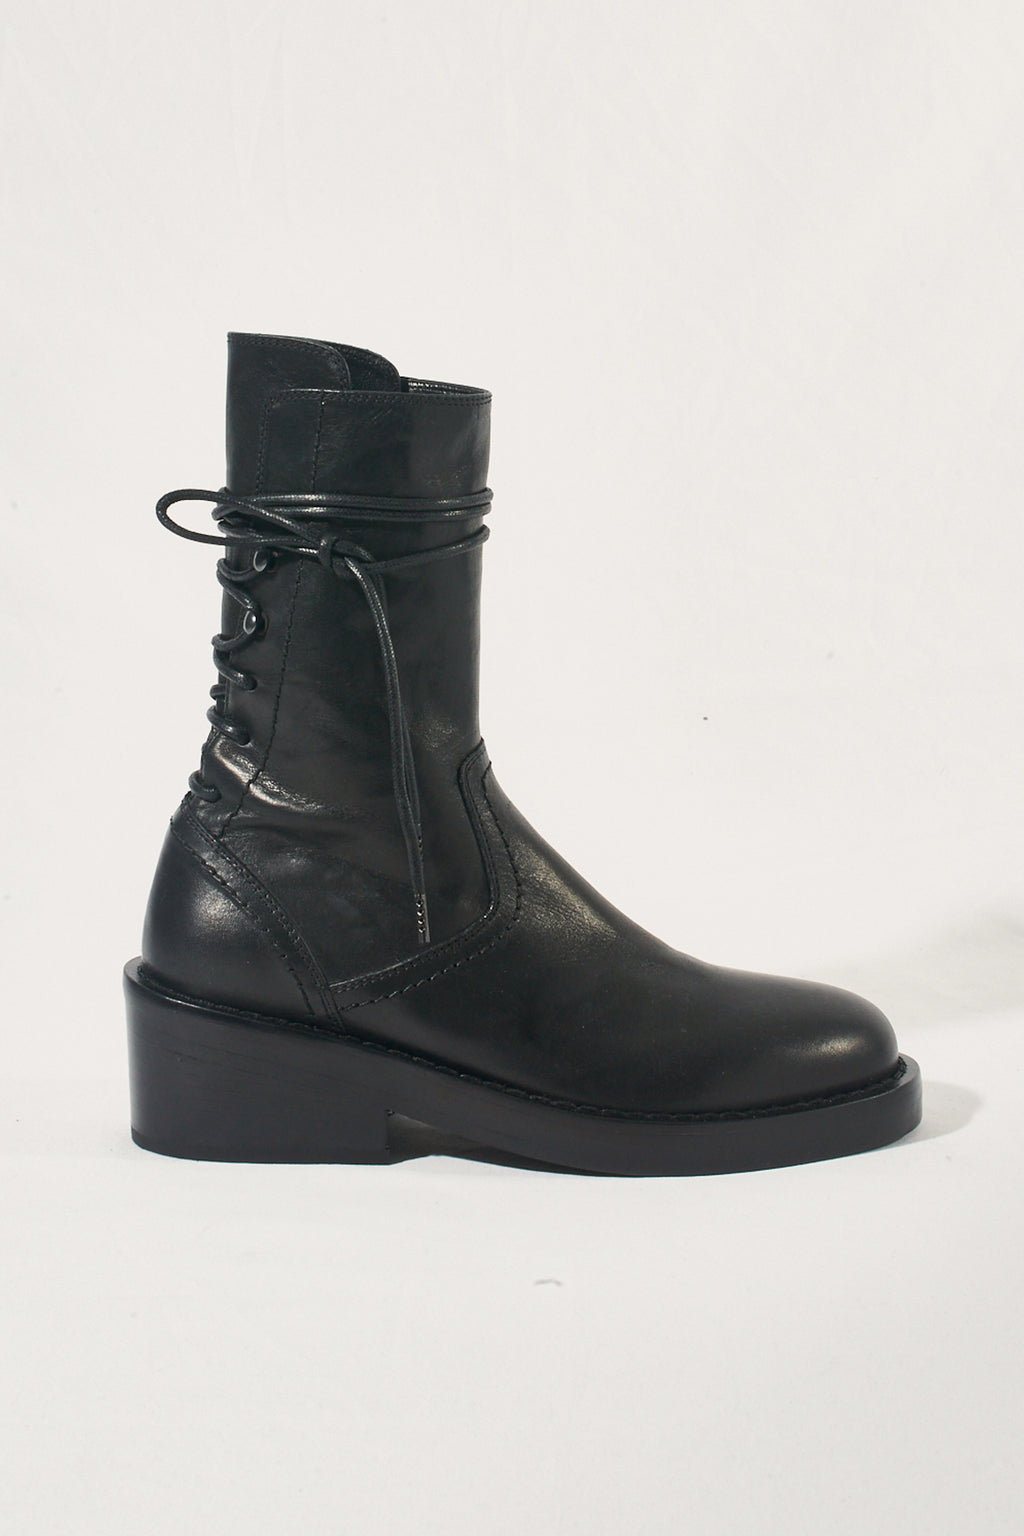 Back laced-up boots